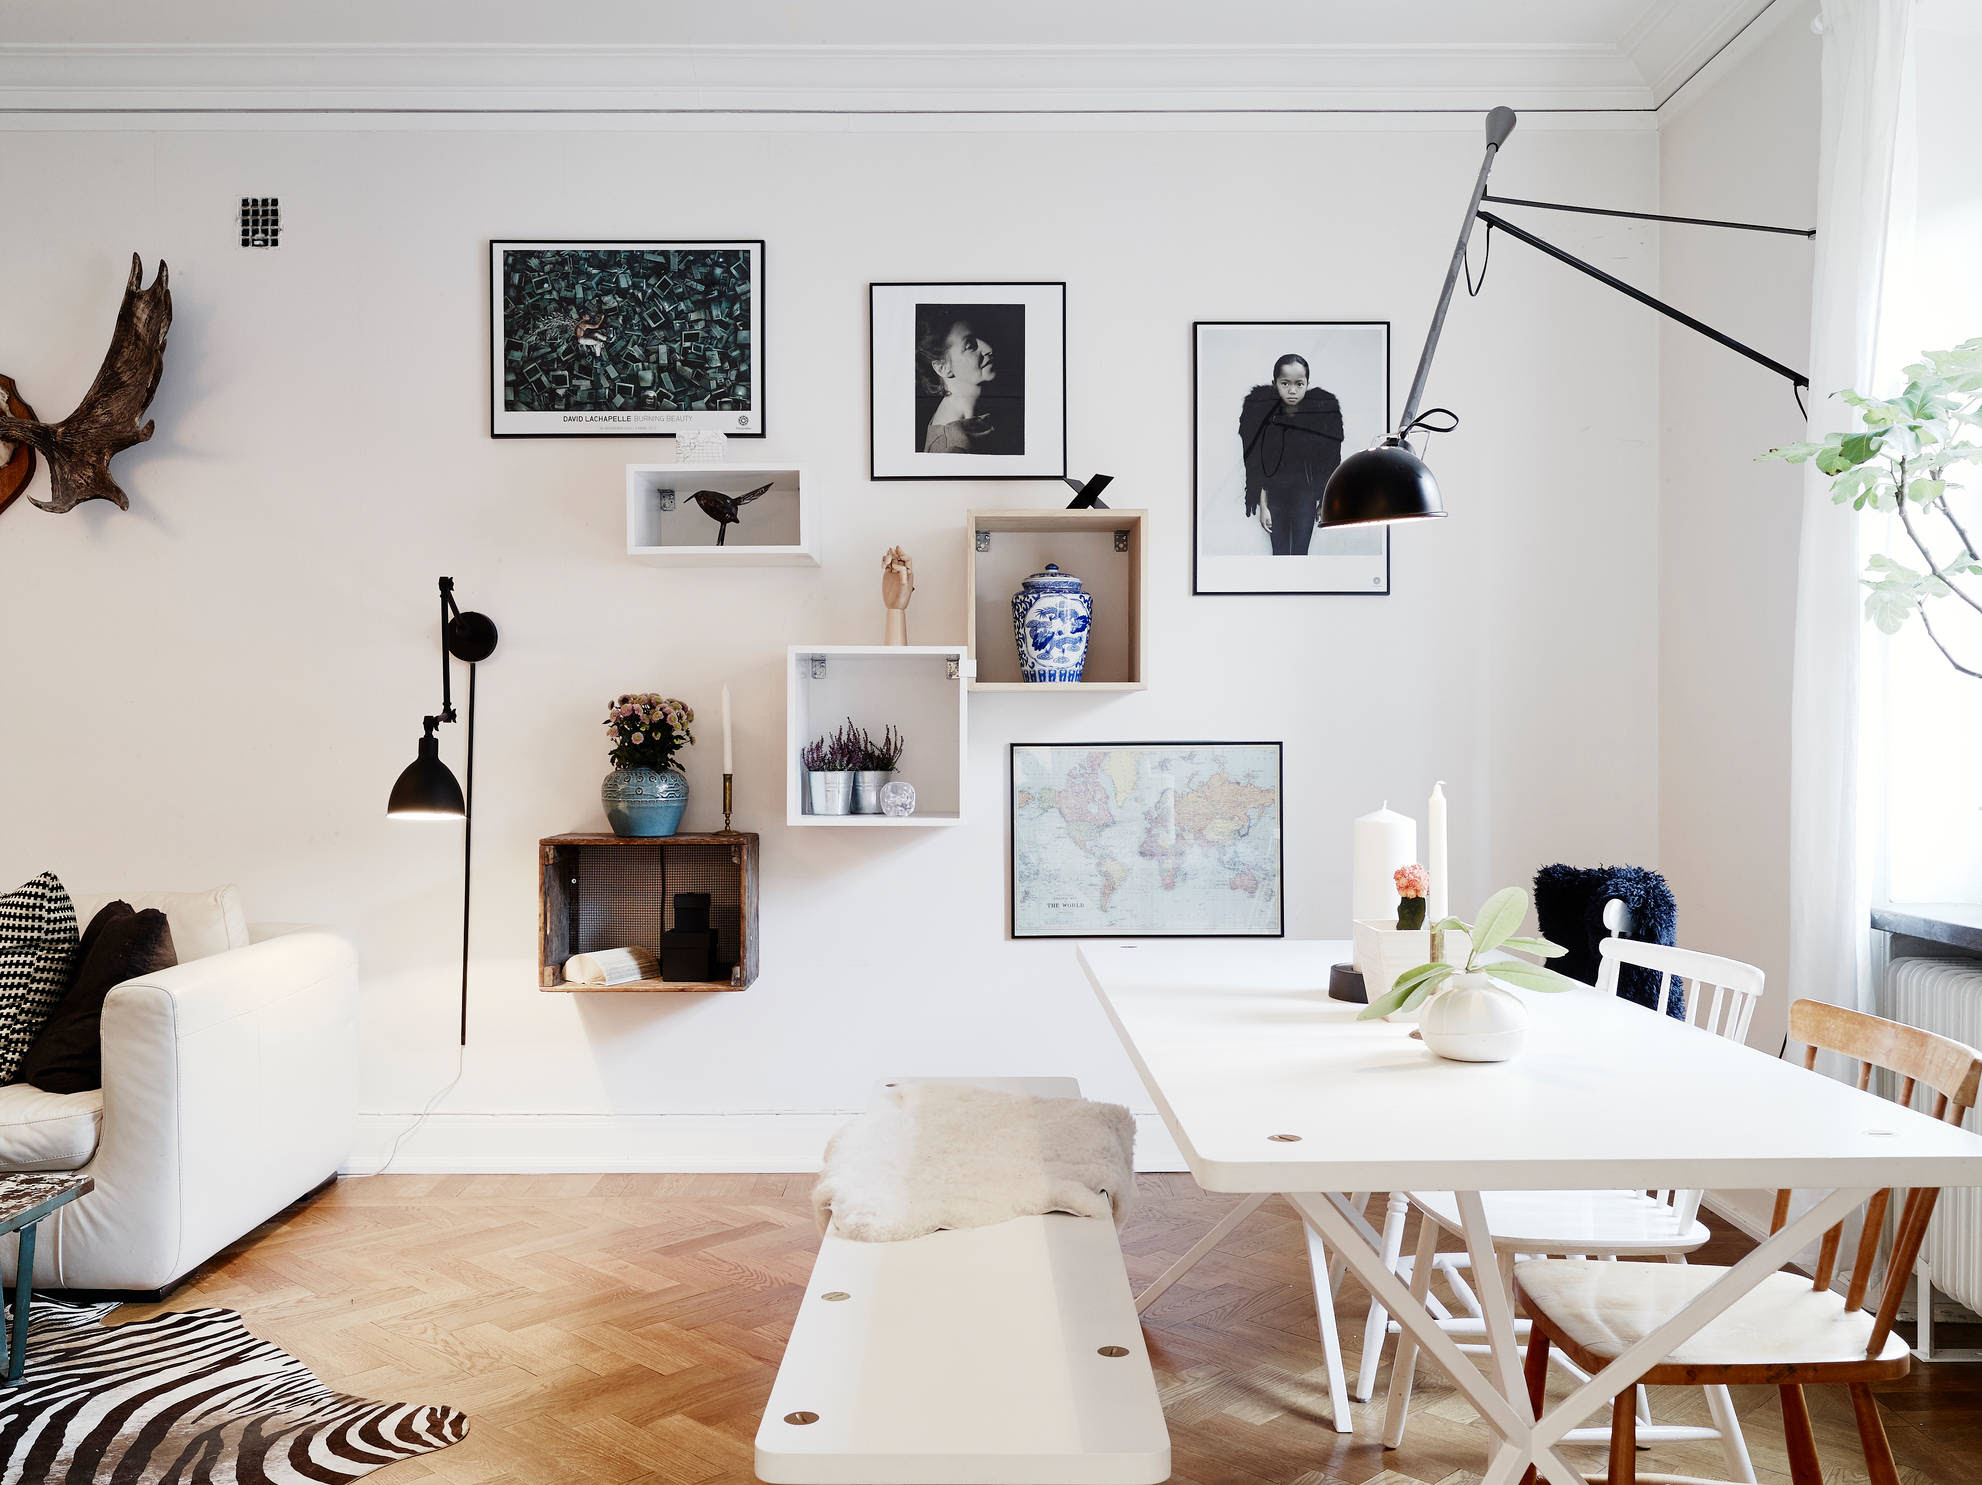 Living room with different angles and lines - COCO LAPINE ...